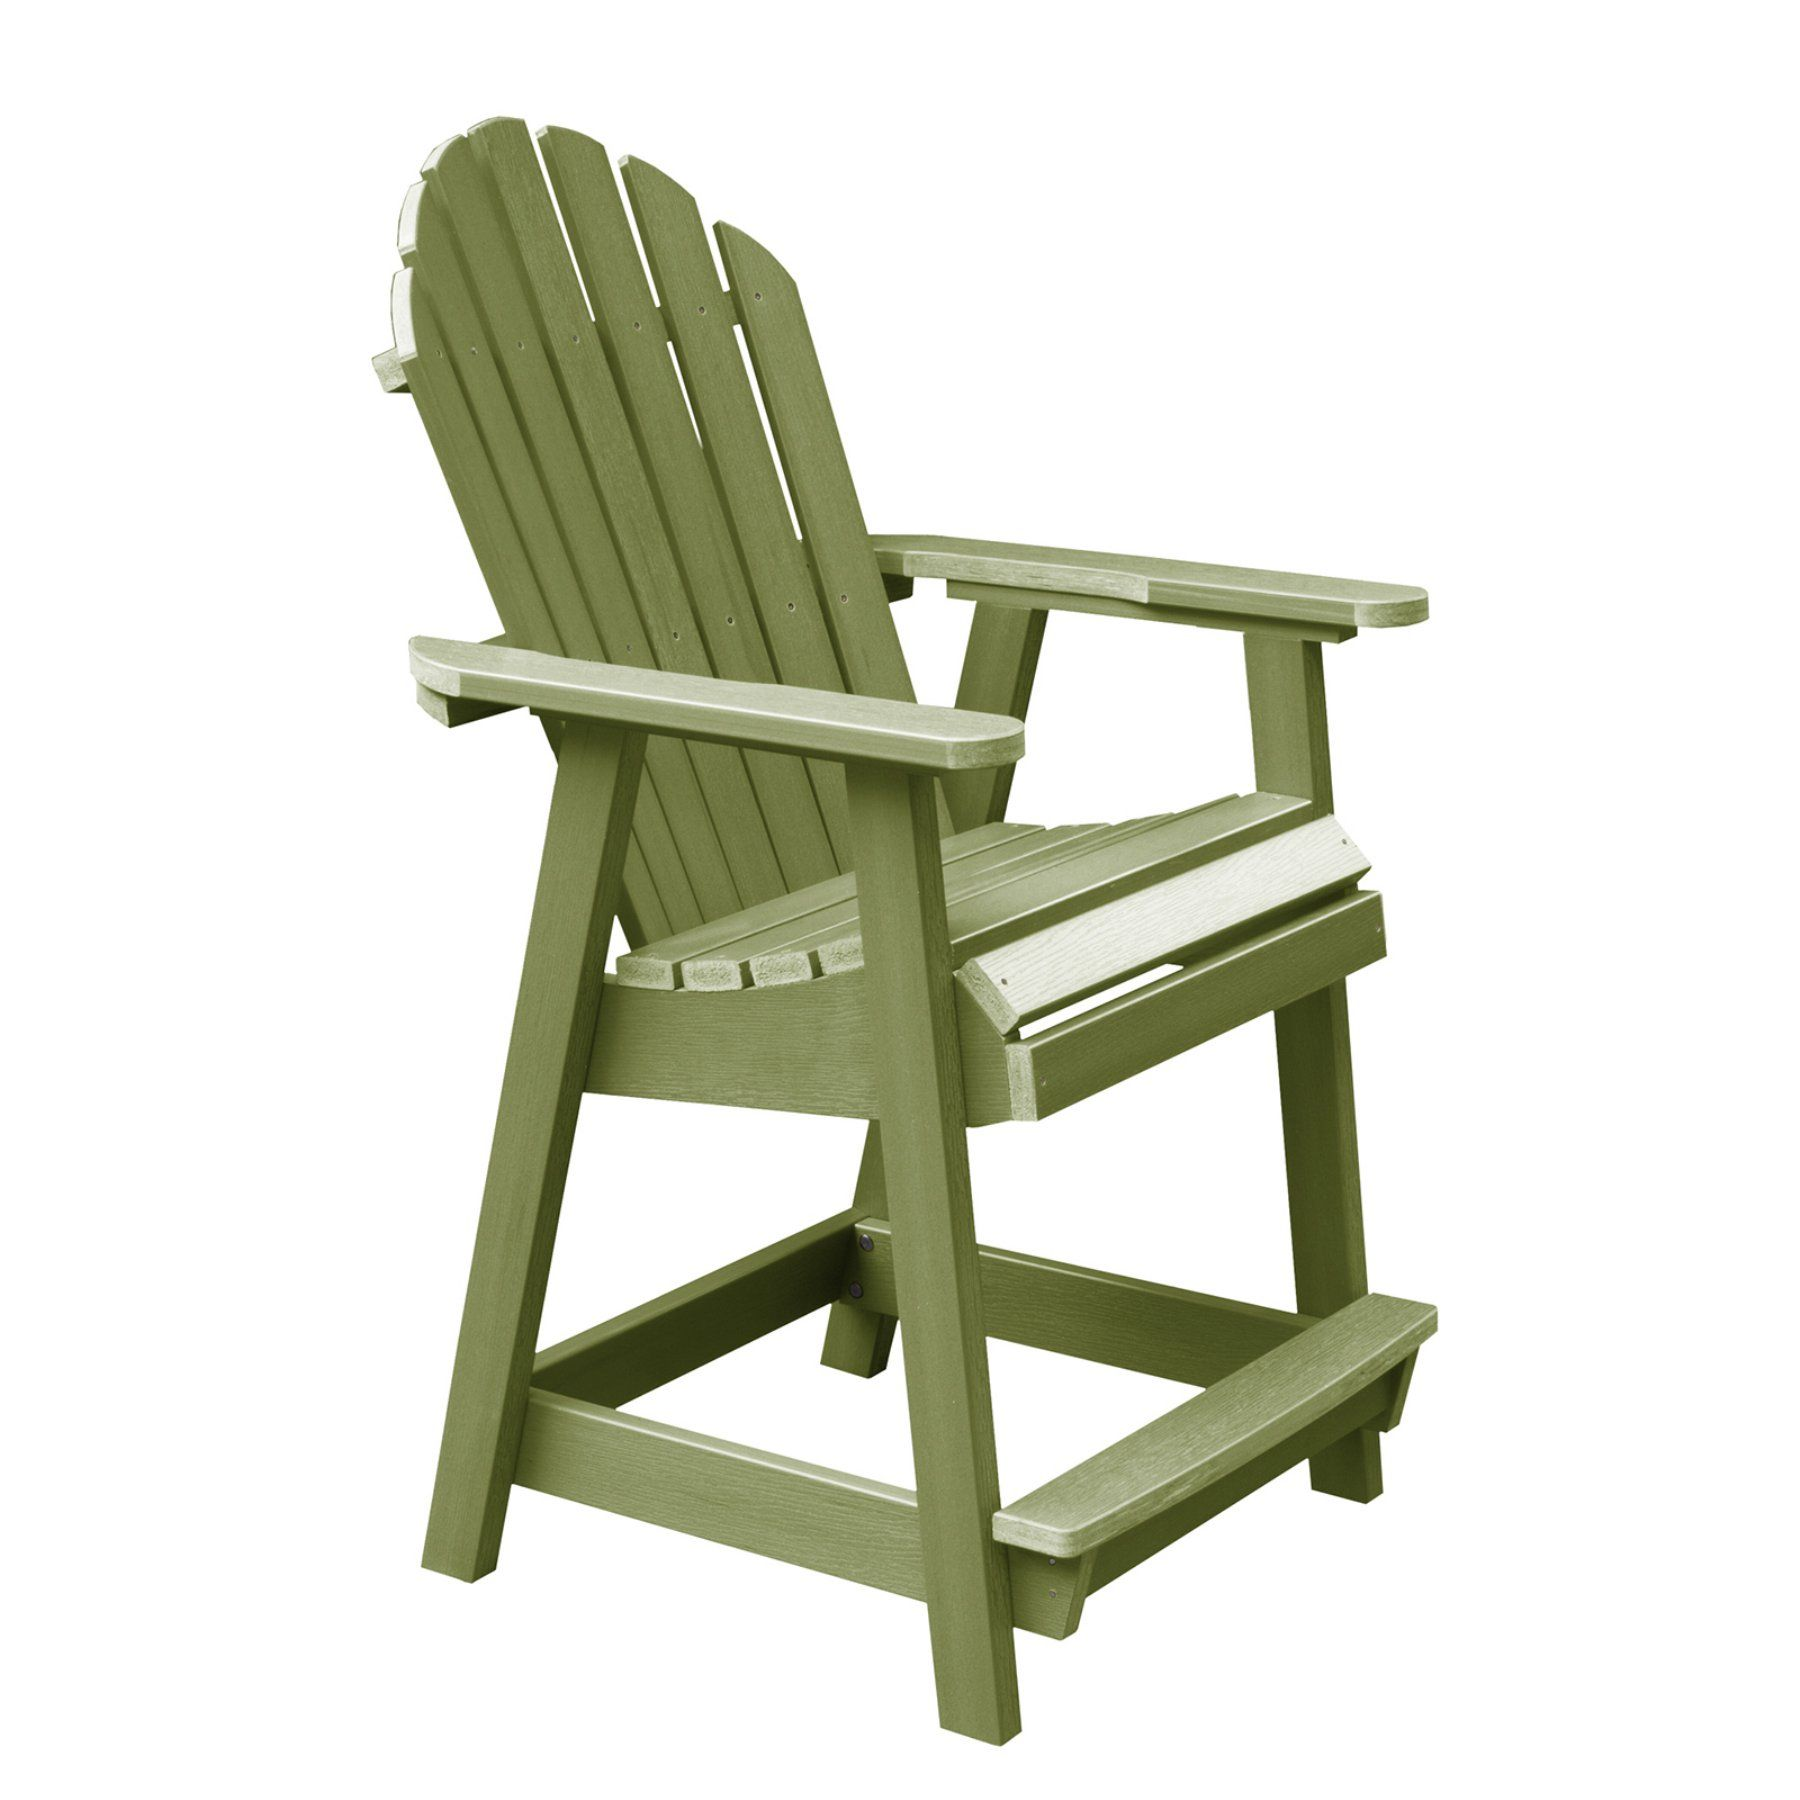 Outdoor Highwood Usa Hamilton Recycled Plastic Counter Height Adirondack Deck